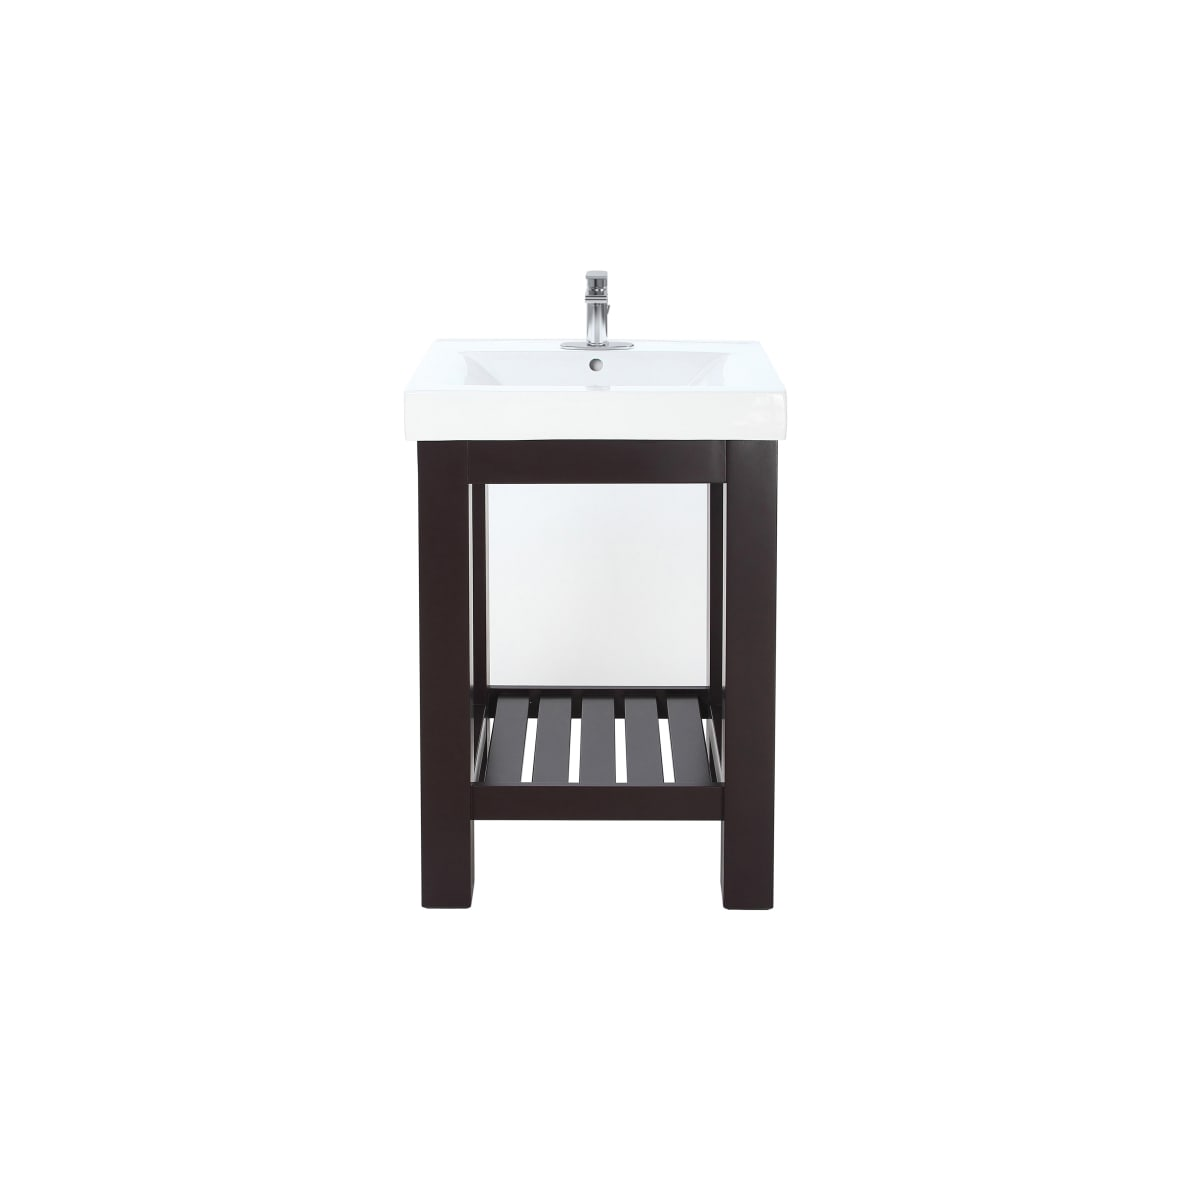 "Jacuzzi Razzo 24"" Free Standing Single Basin Vanity Set with Wood Cabinet, and Vitreous China Sink - Less Faucet"